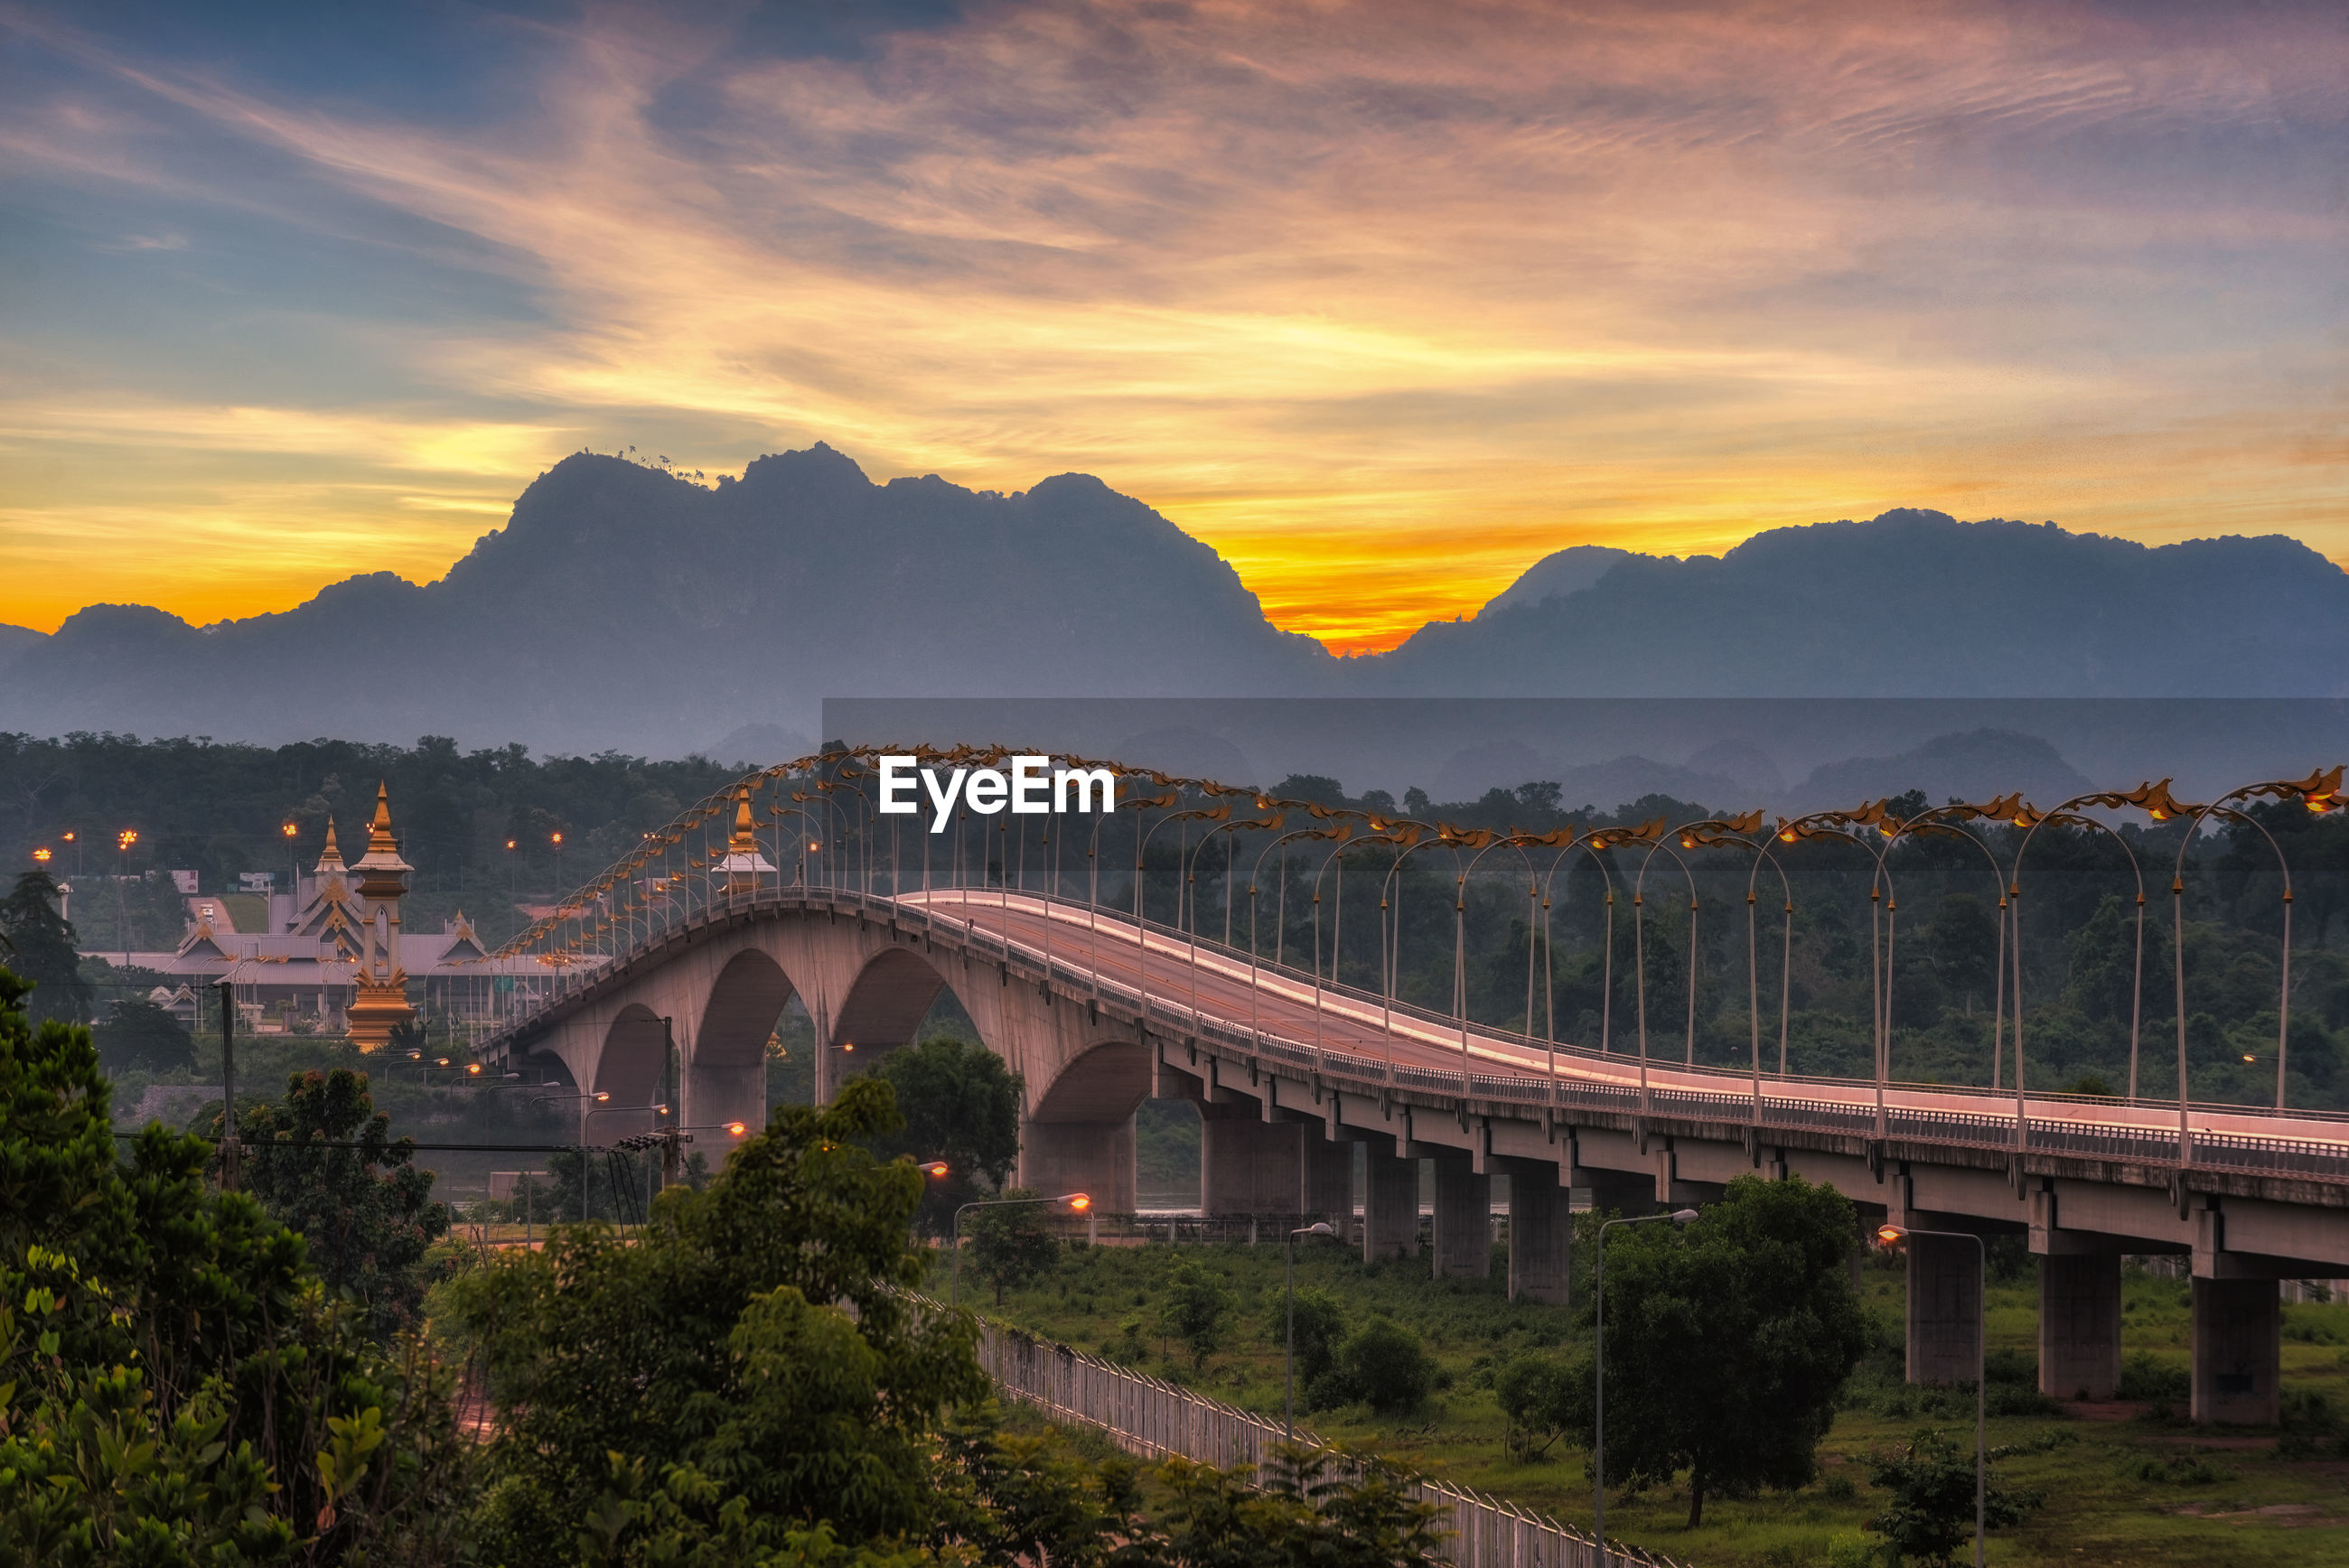 Bridge by mountain against cloudy sky during sunset